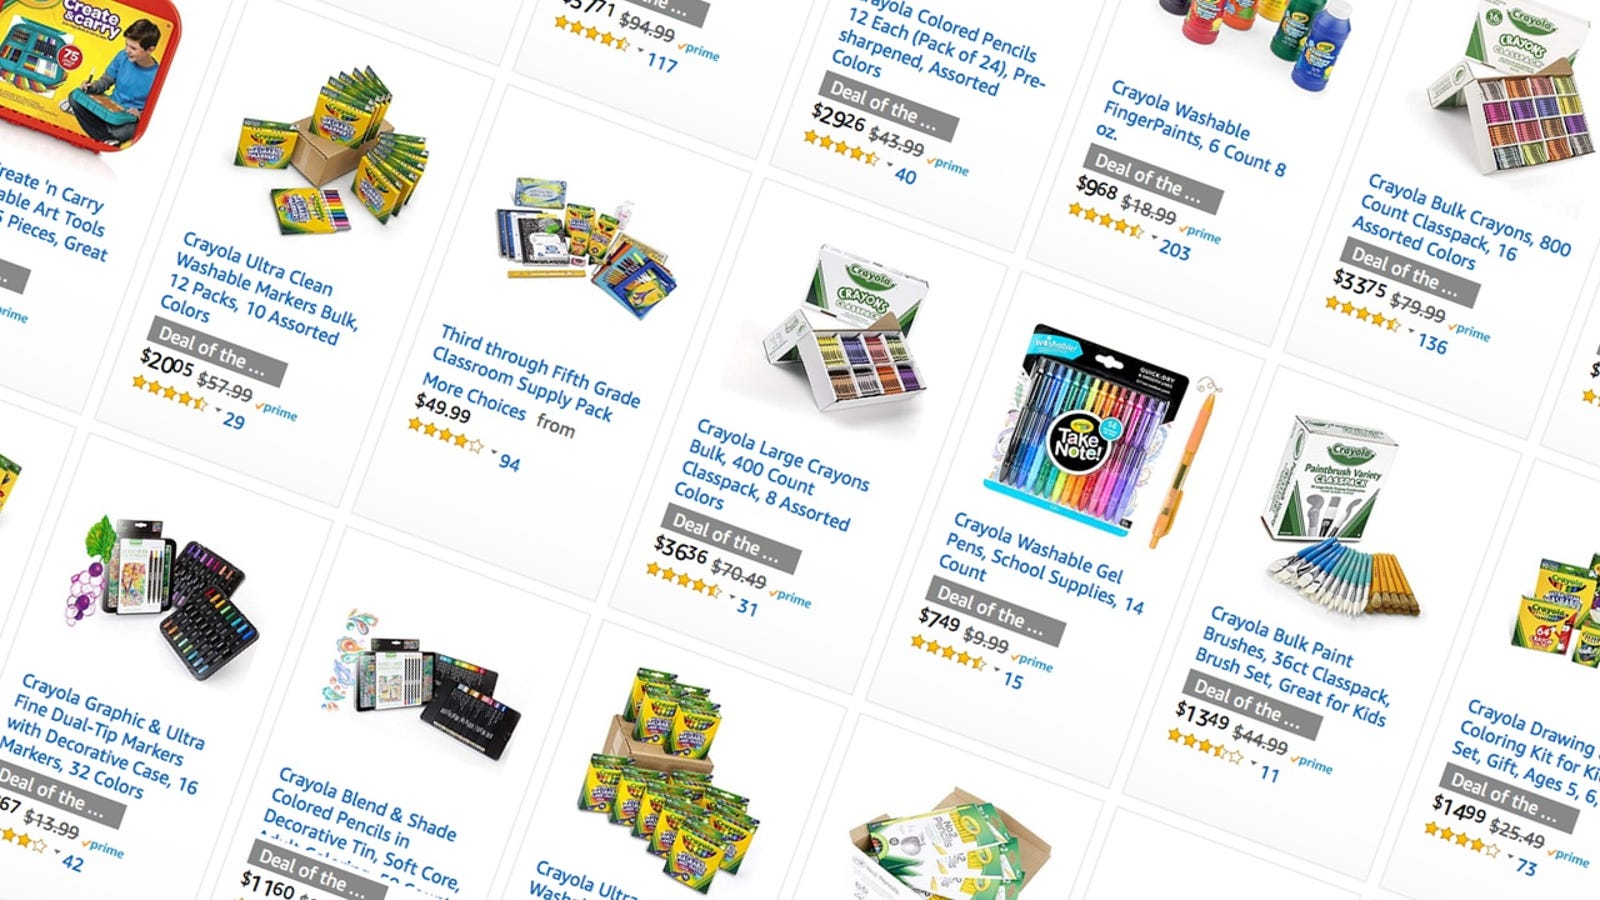 Amazons running a massive one day crayola sale including class amazons running a massive one day crayola sale including class packs you can donate to a school solutioingenieria Gallery